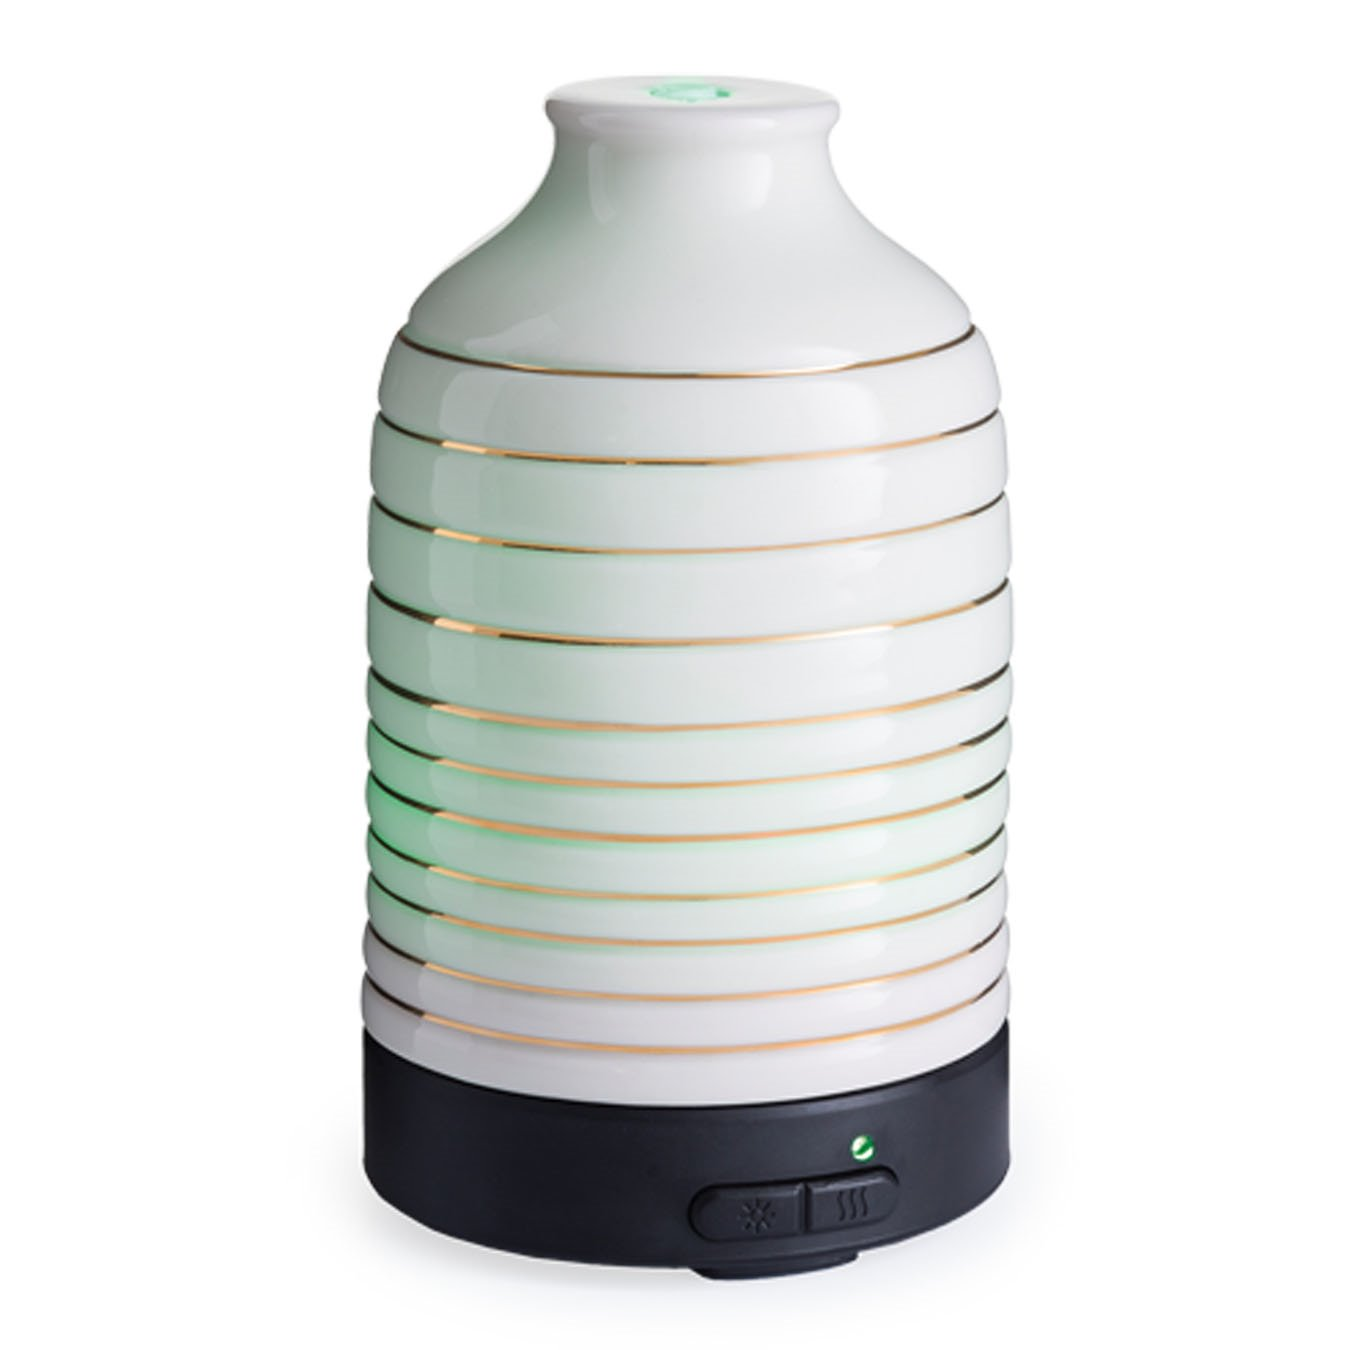 Serenity Ultrasonic Essential Oil Diffuser by Airomé